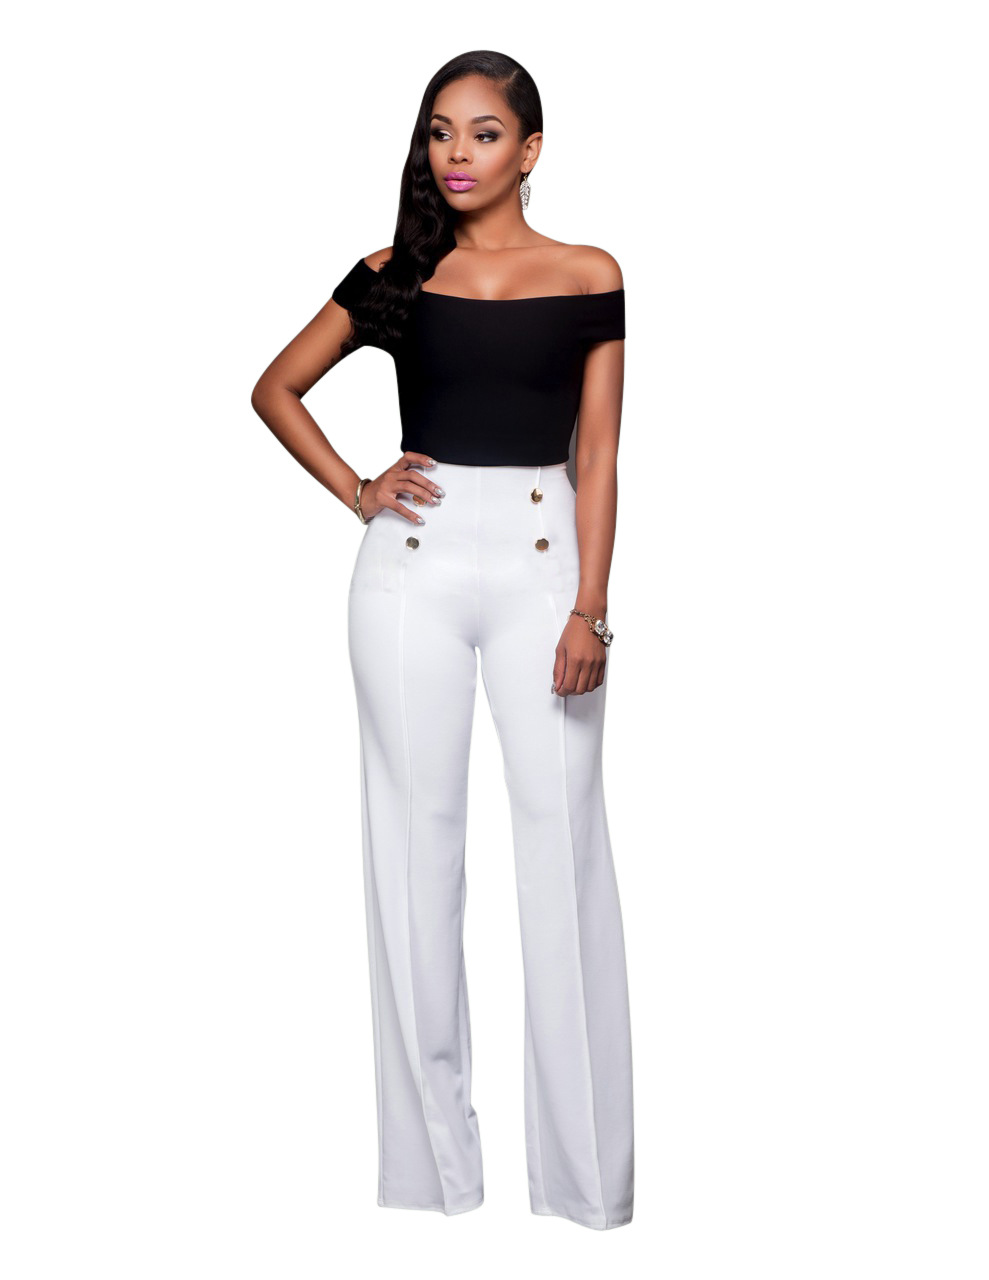 3db96666131 Black High Waisted Pants And Crop Top